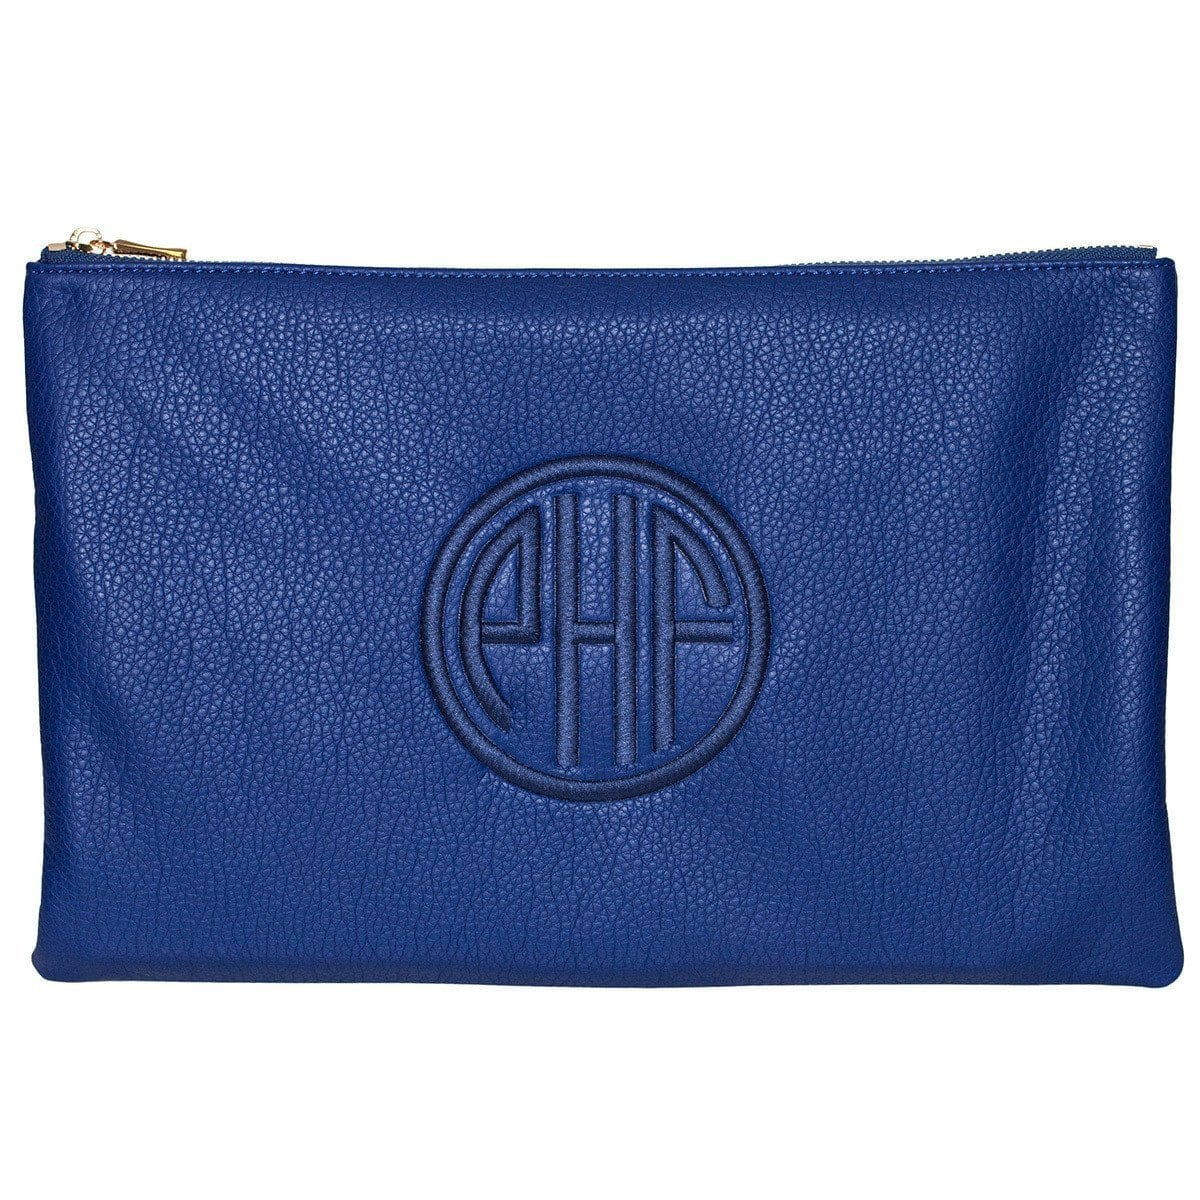 Cobalt Monogrammed Personalized Clutch-Bag-Default-Jack and Jill Boutique